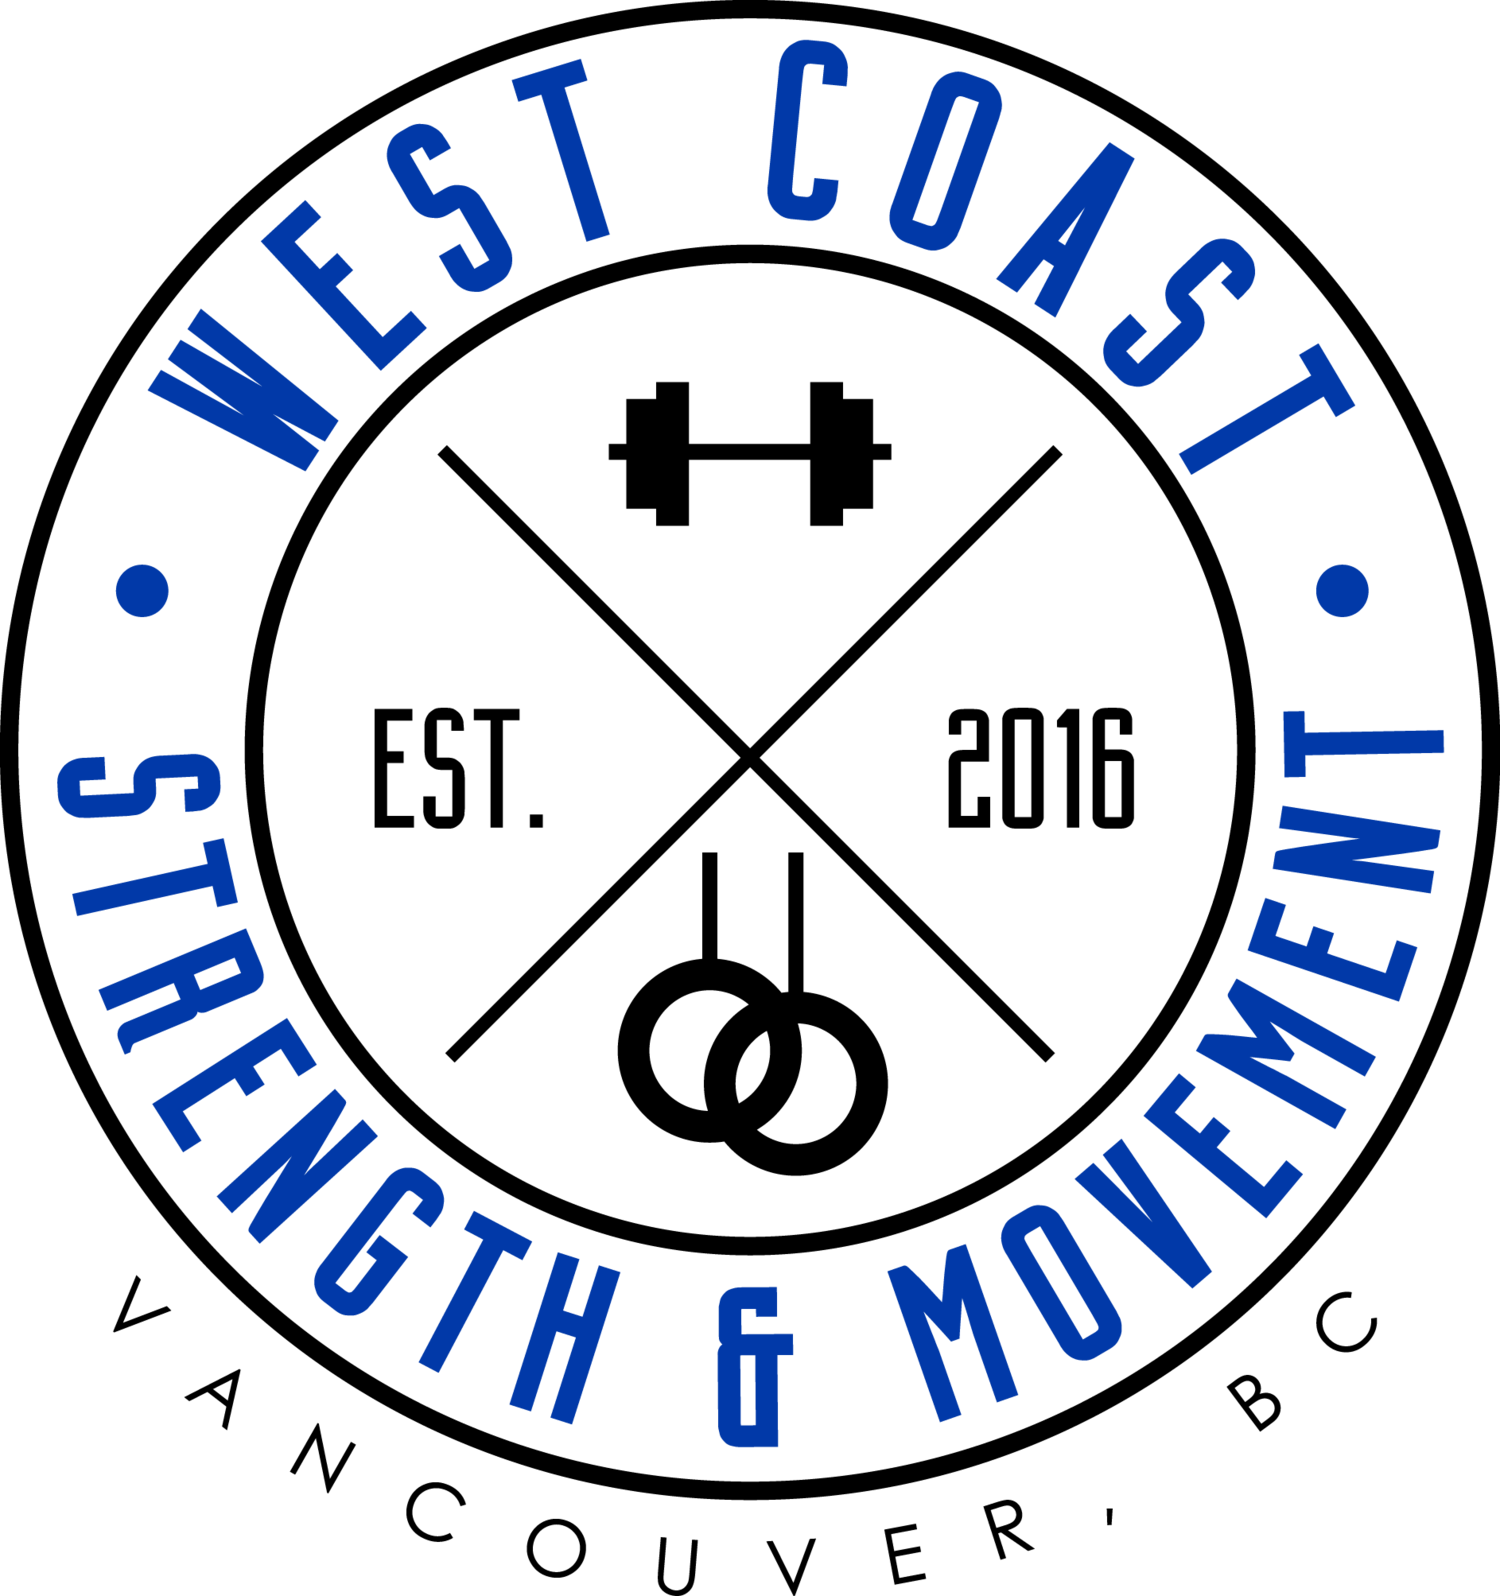 West Coast Strength & Movement